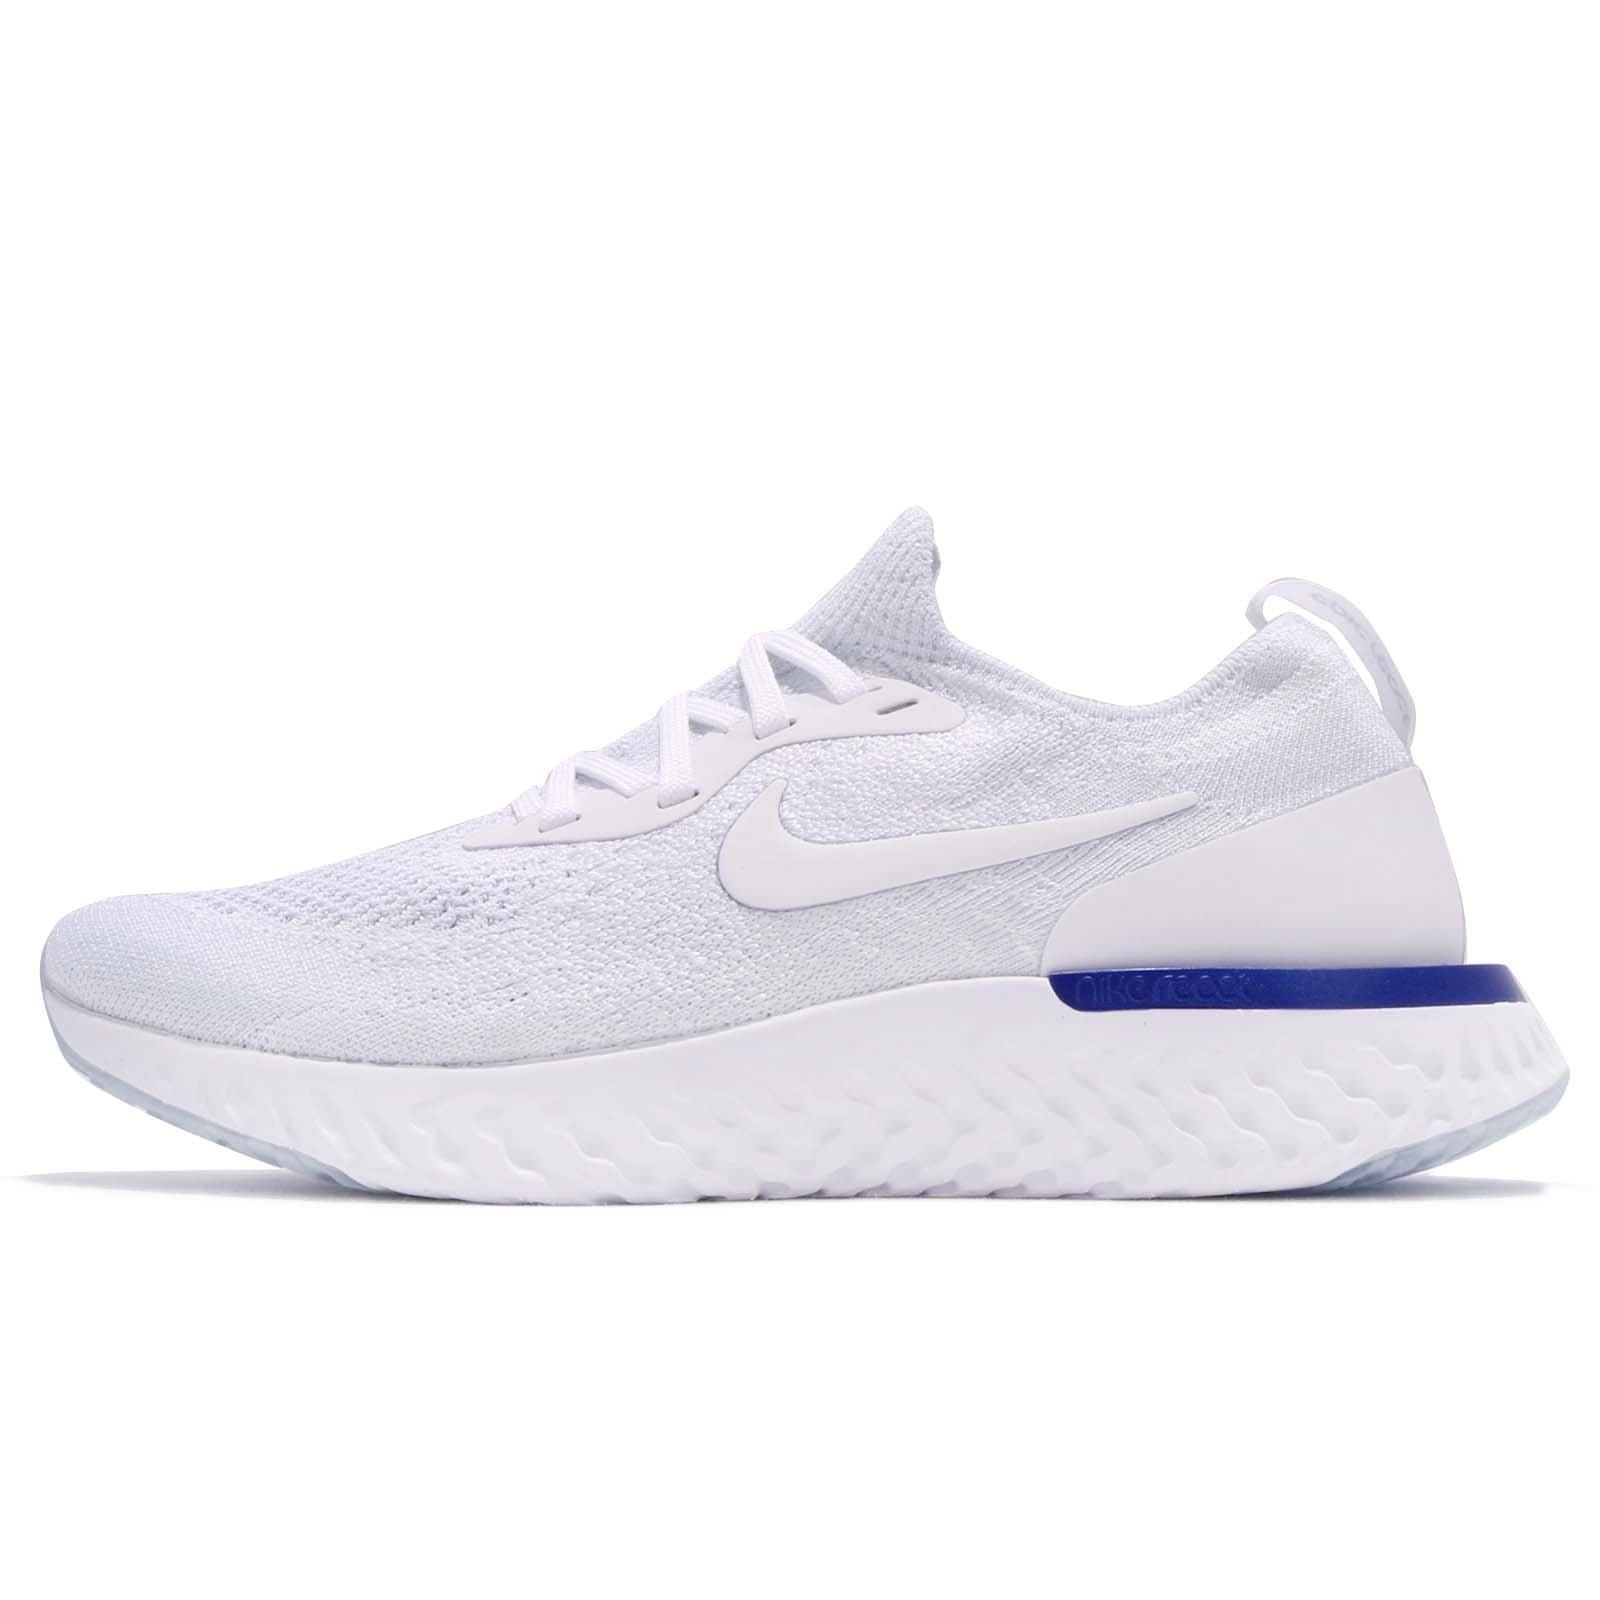 low priced a8589 e96d2 Galleon - NIKE Women s Epic React Flyknit Running Shoes (11, White Racer  Blue)